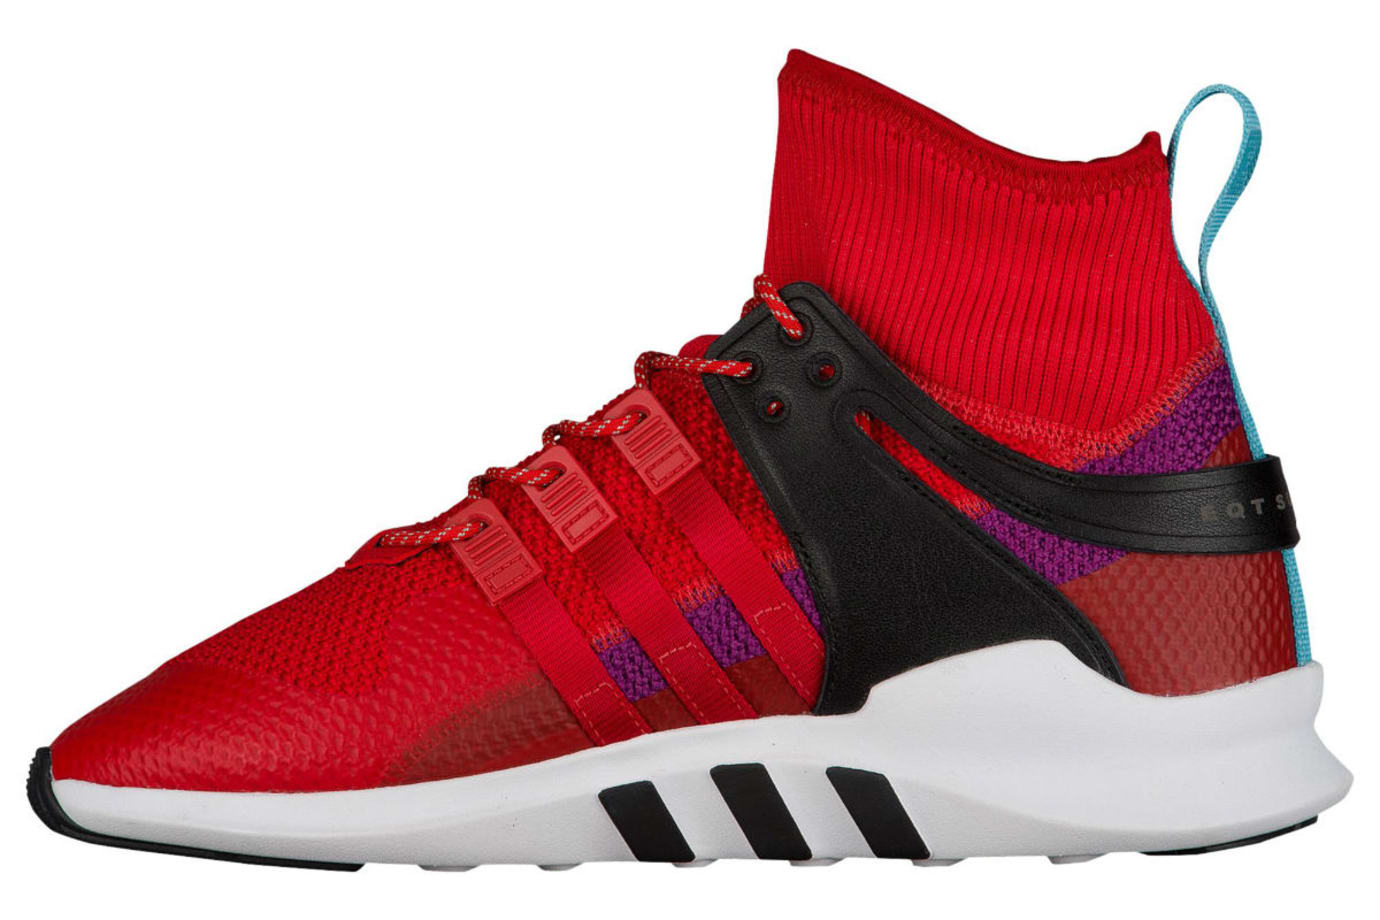 cheap for discount edddd 96875 Adidas EQT Support ADV Winter Release Date | Sole Collector